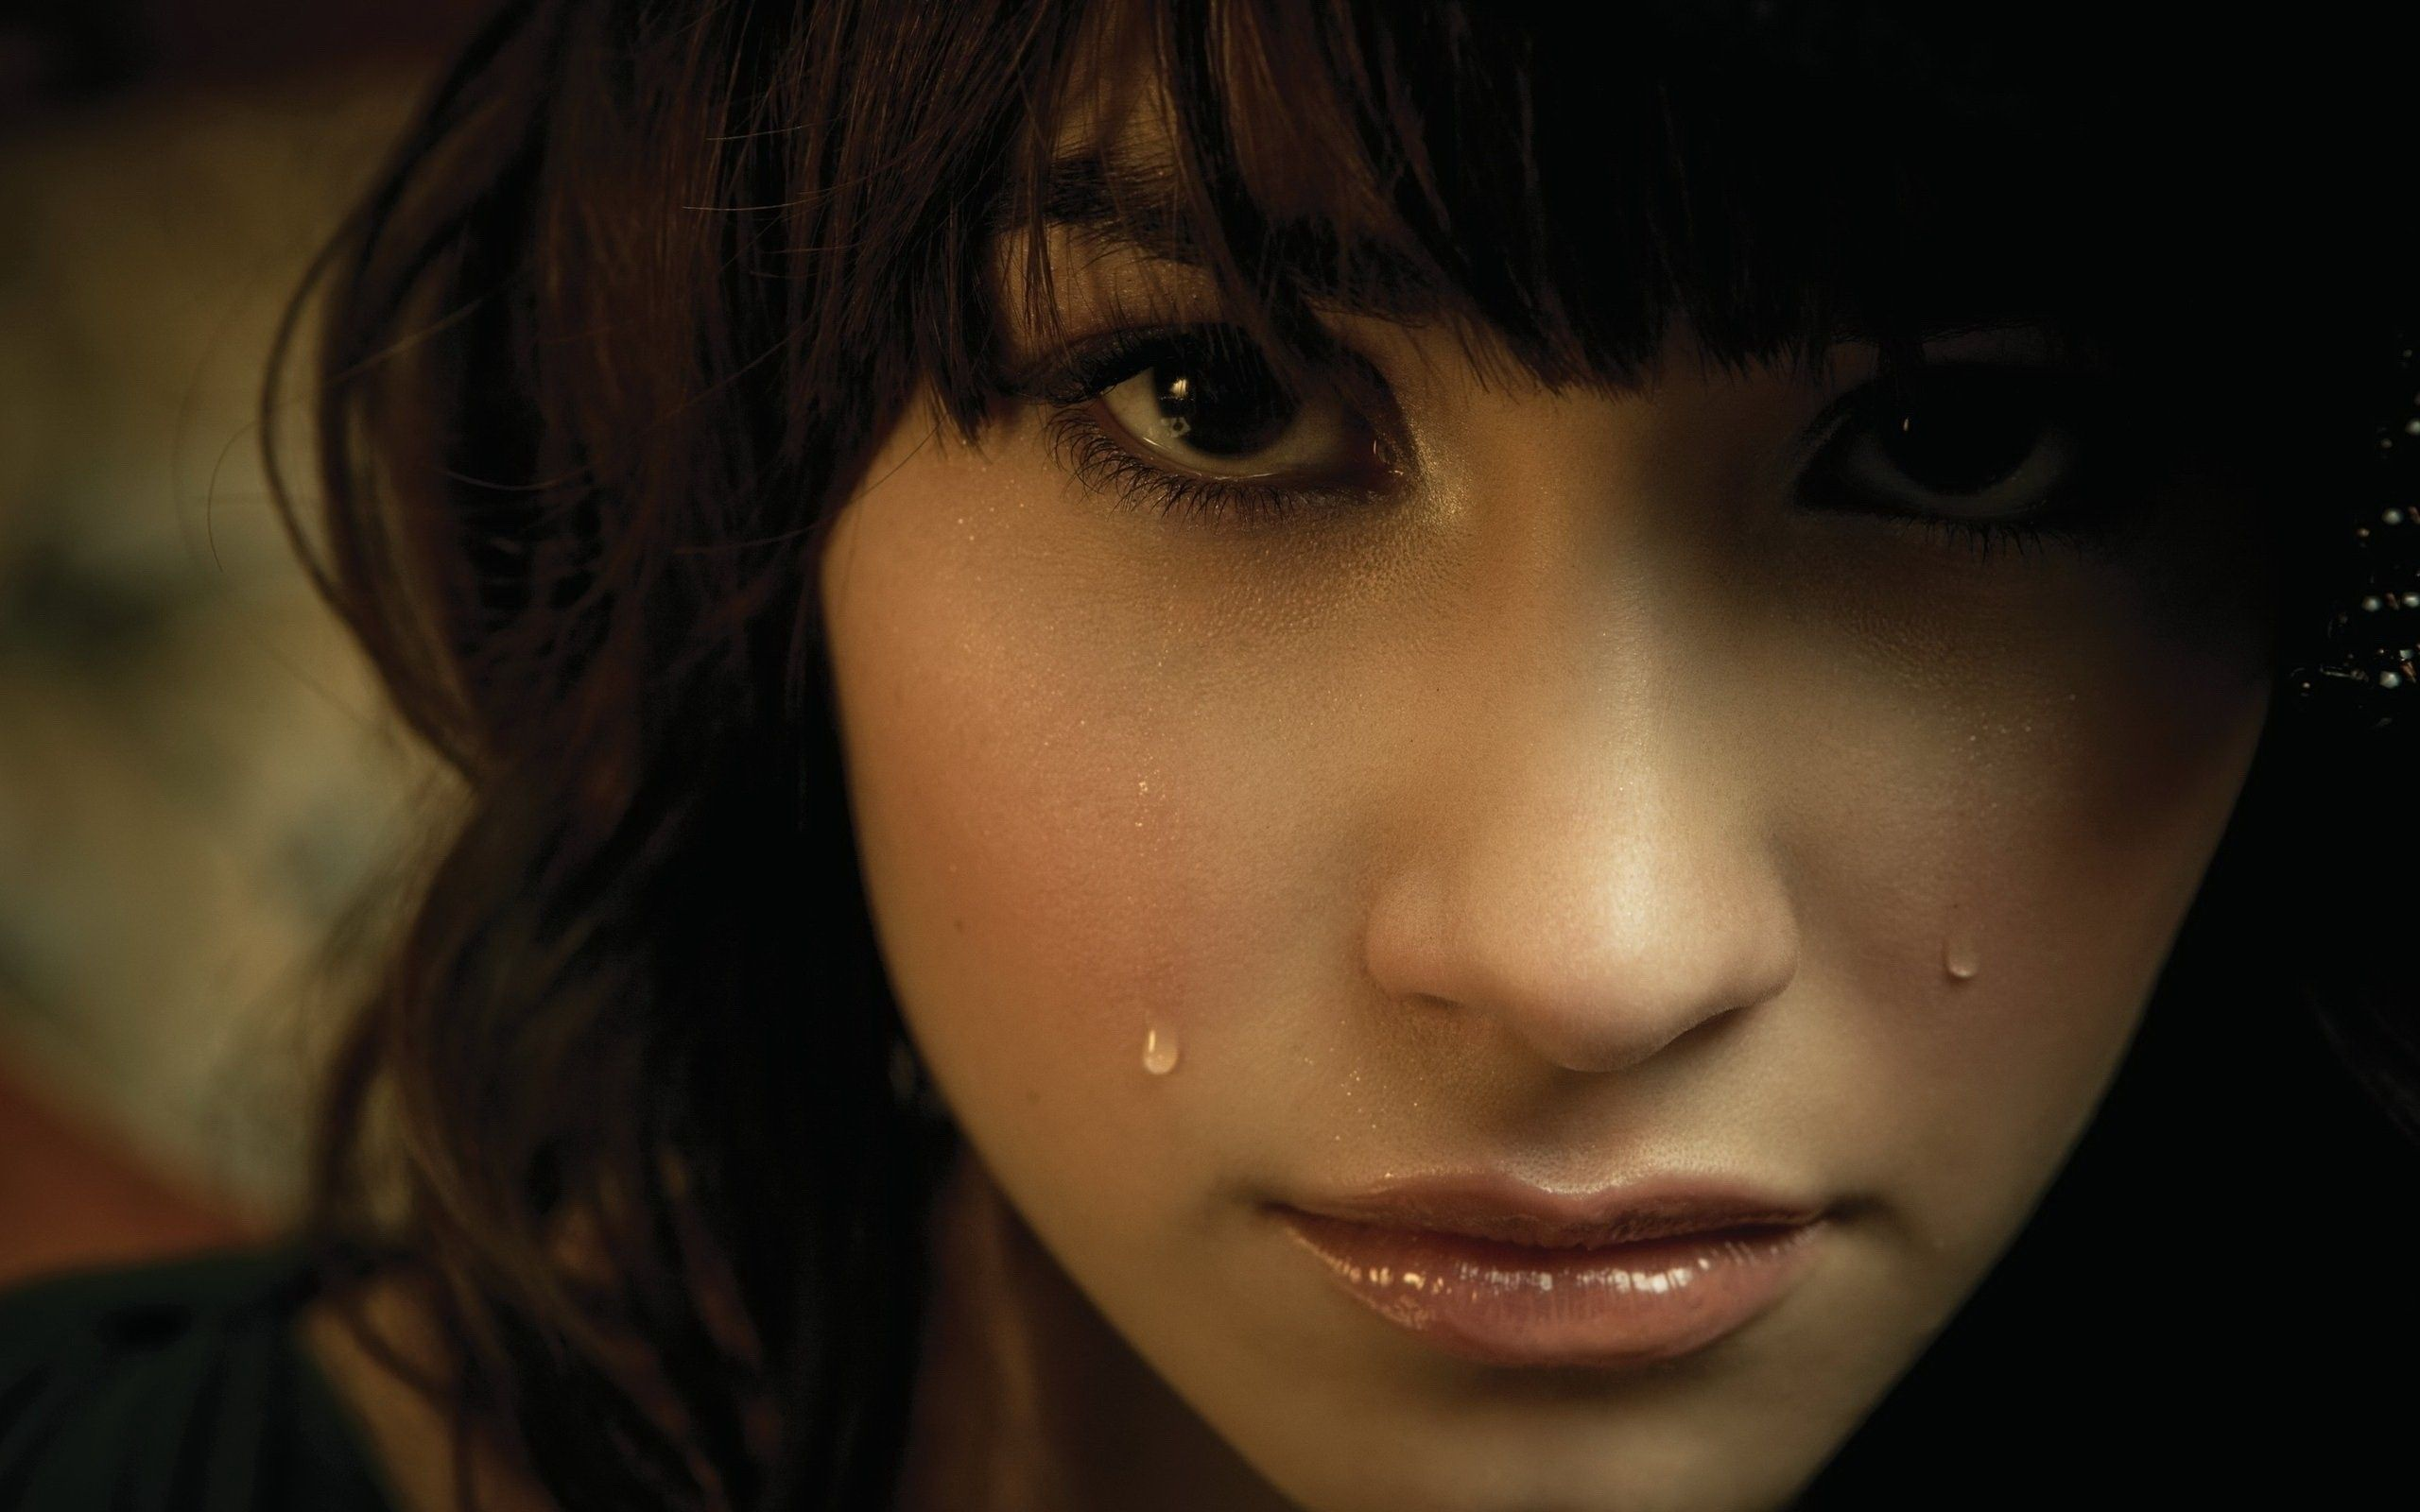 2560x1600 Demi lovato, Brunette, Eyes, Tears wallpaper and background